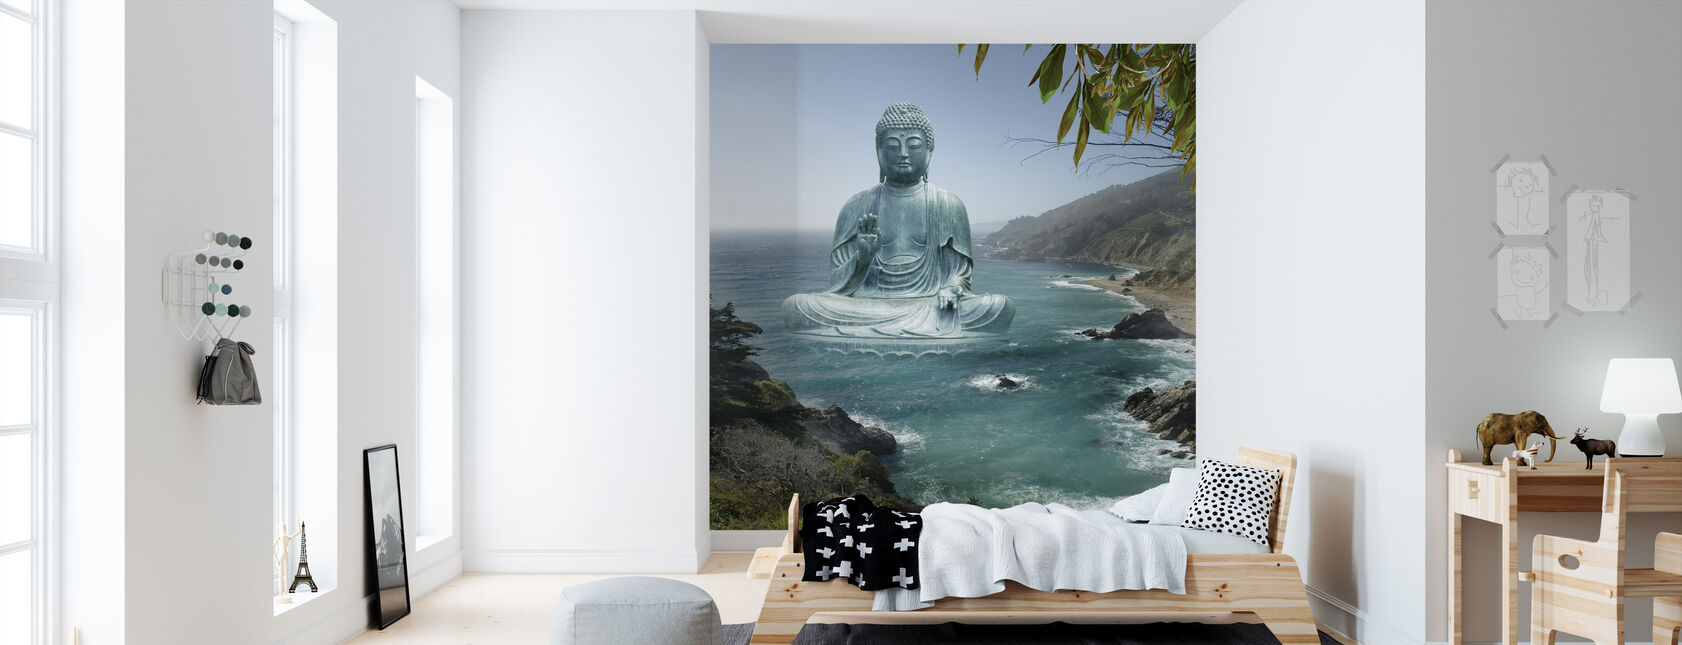 Big Sur Tea Garden Buddha - Wallpaper - Kids Room